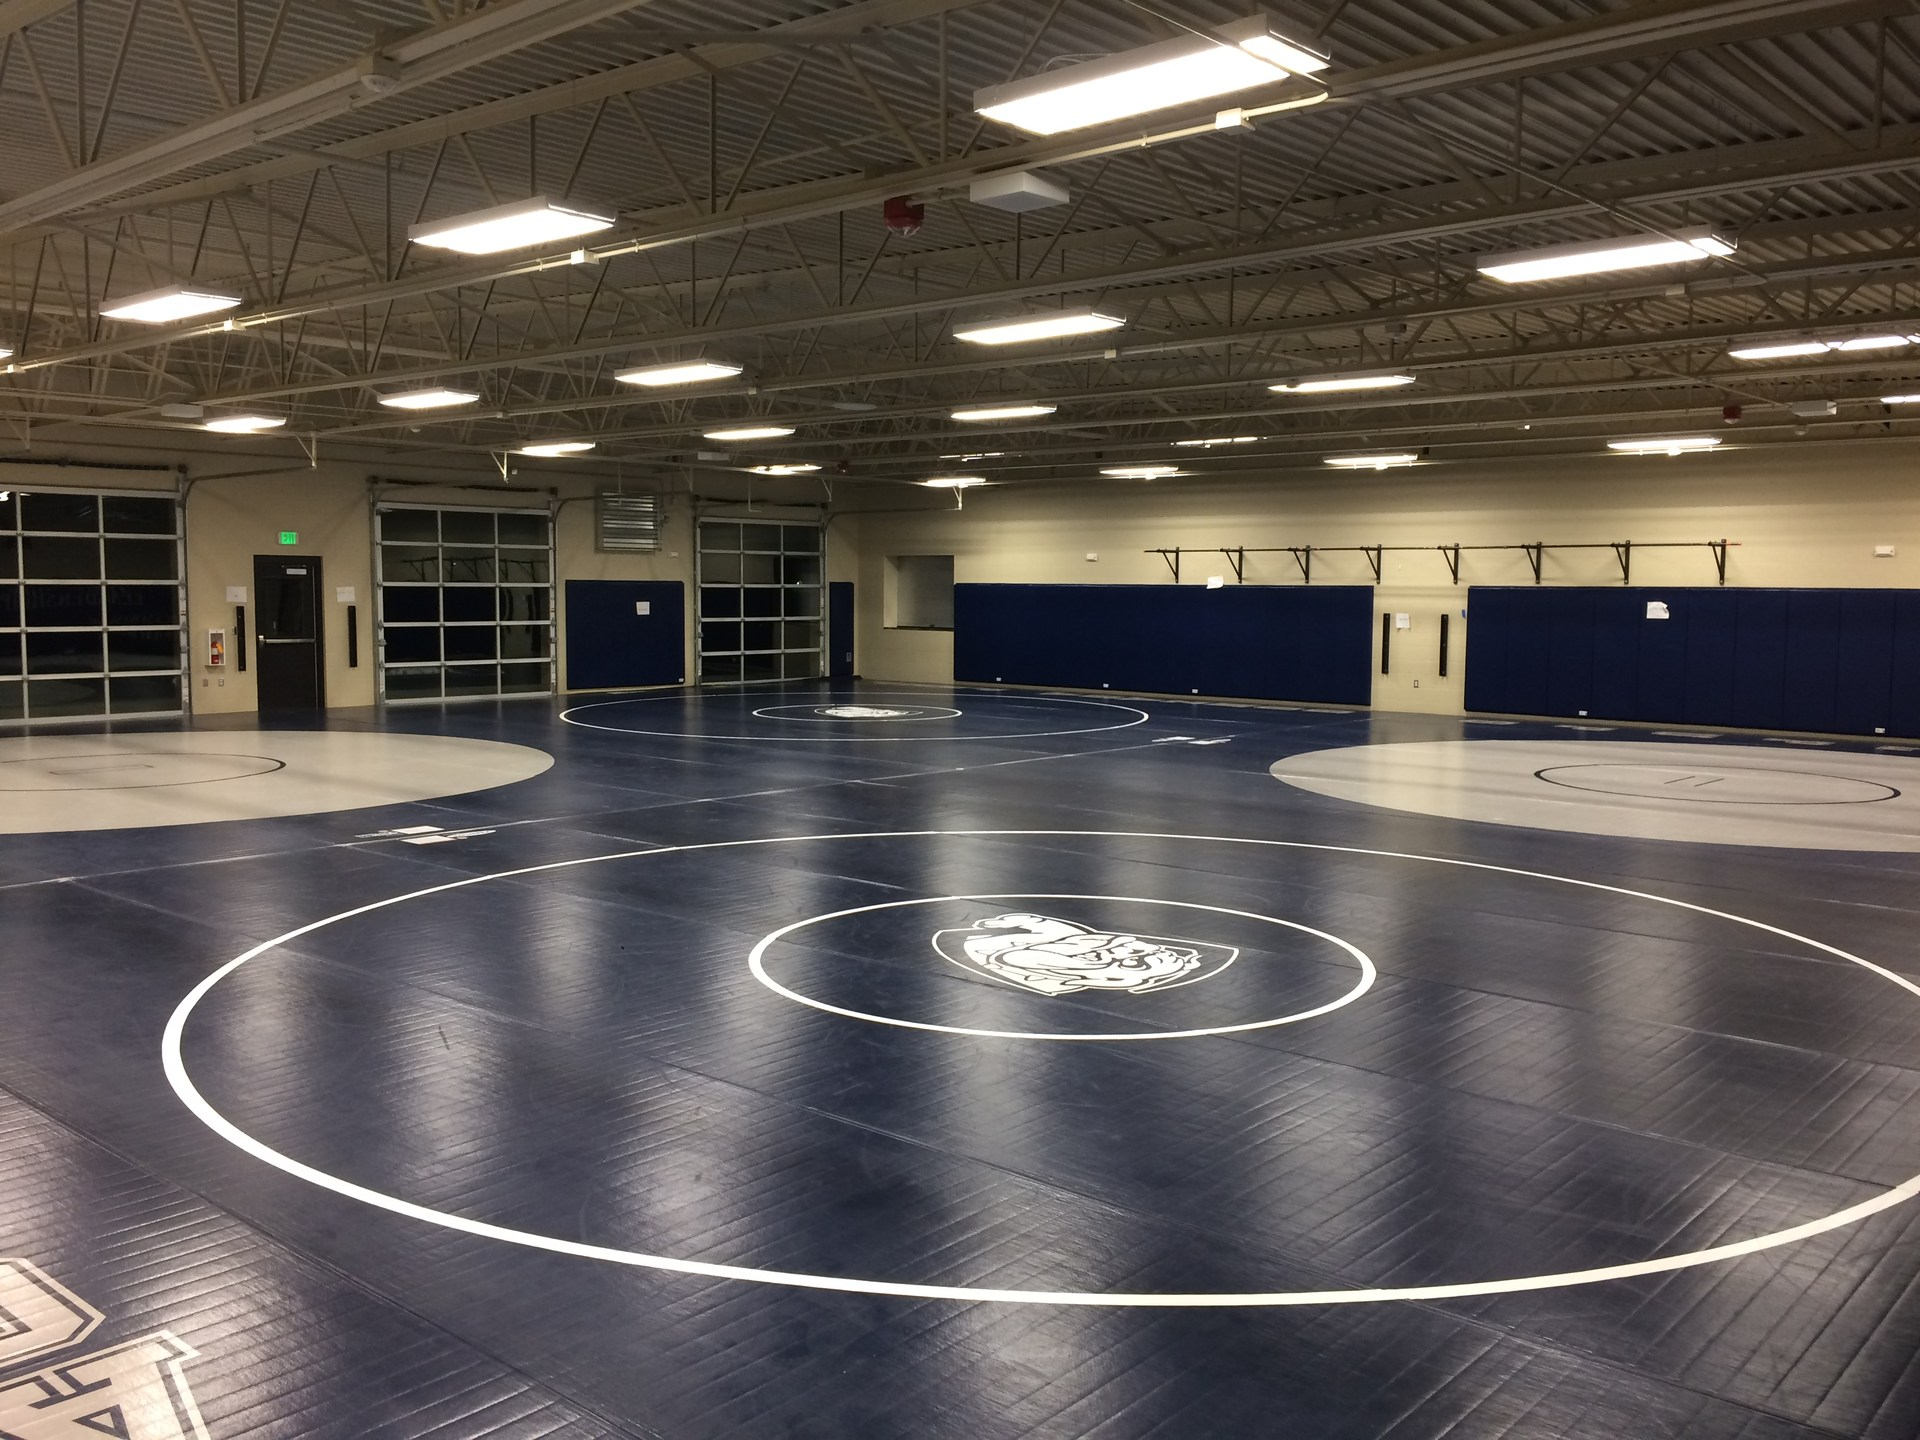 St. Sebastian Wrestling Center